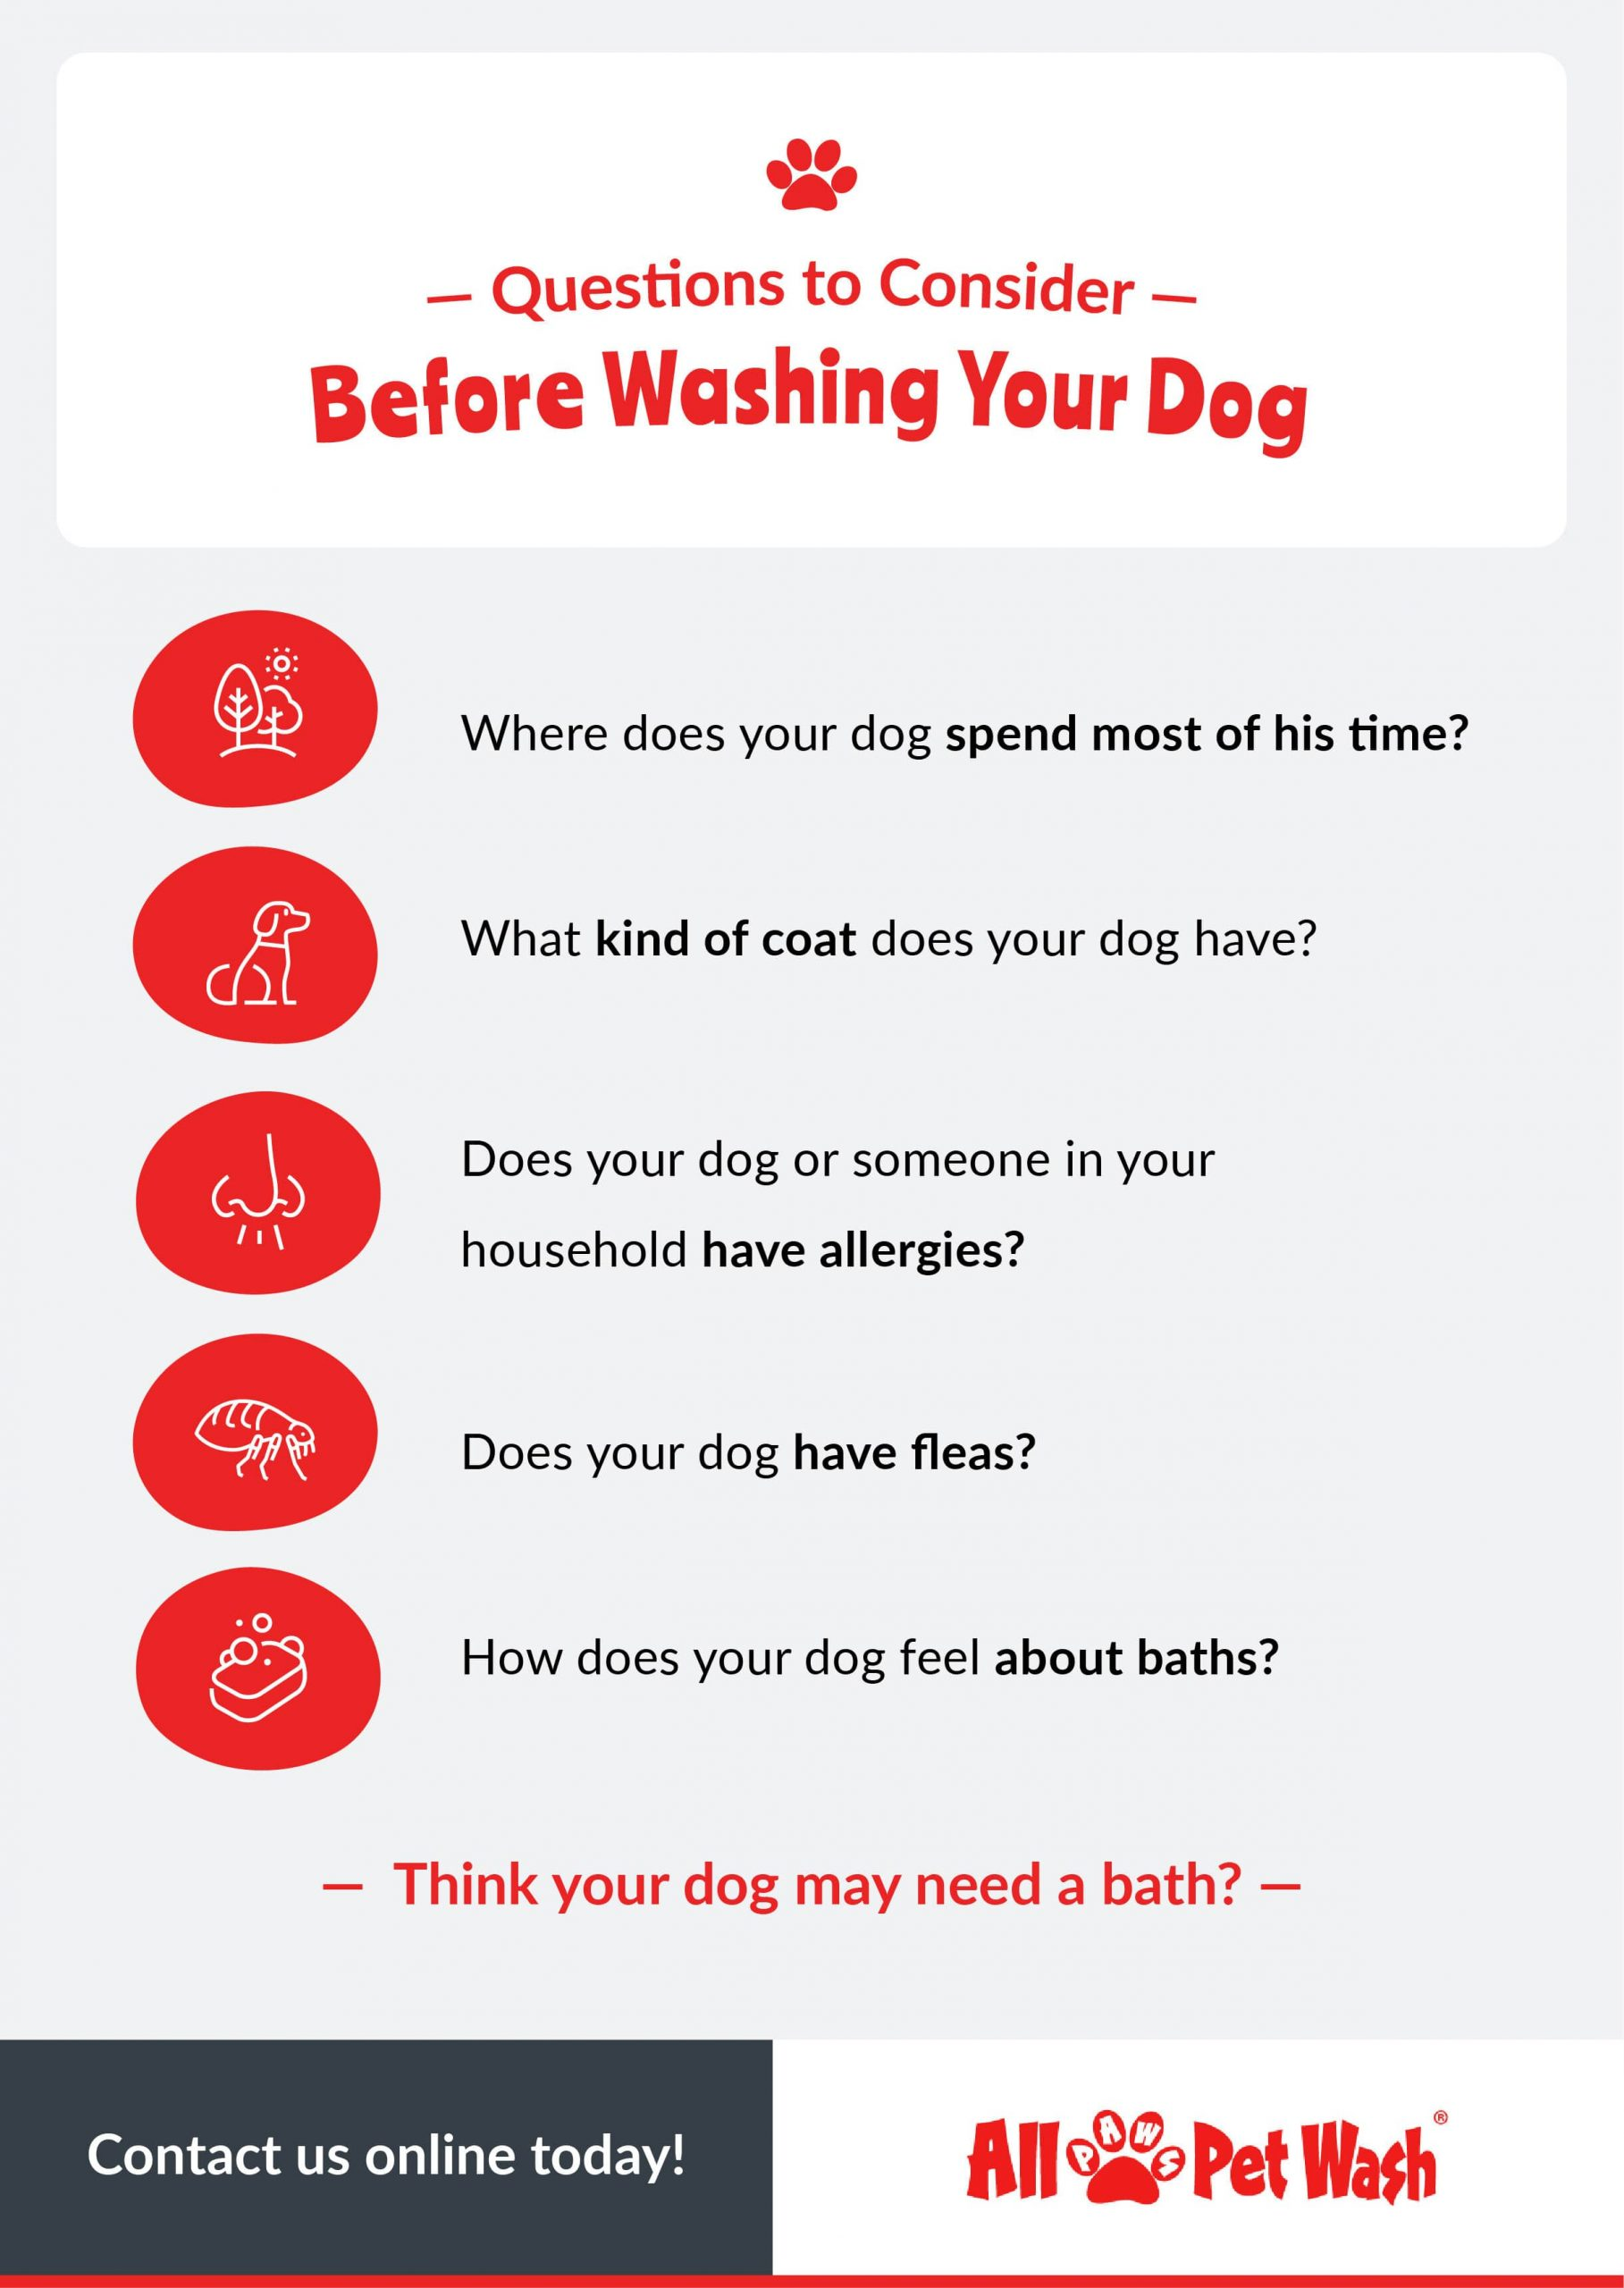 Micrographic - Questions to Consider Before Washing Your Dog